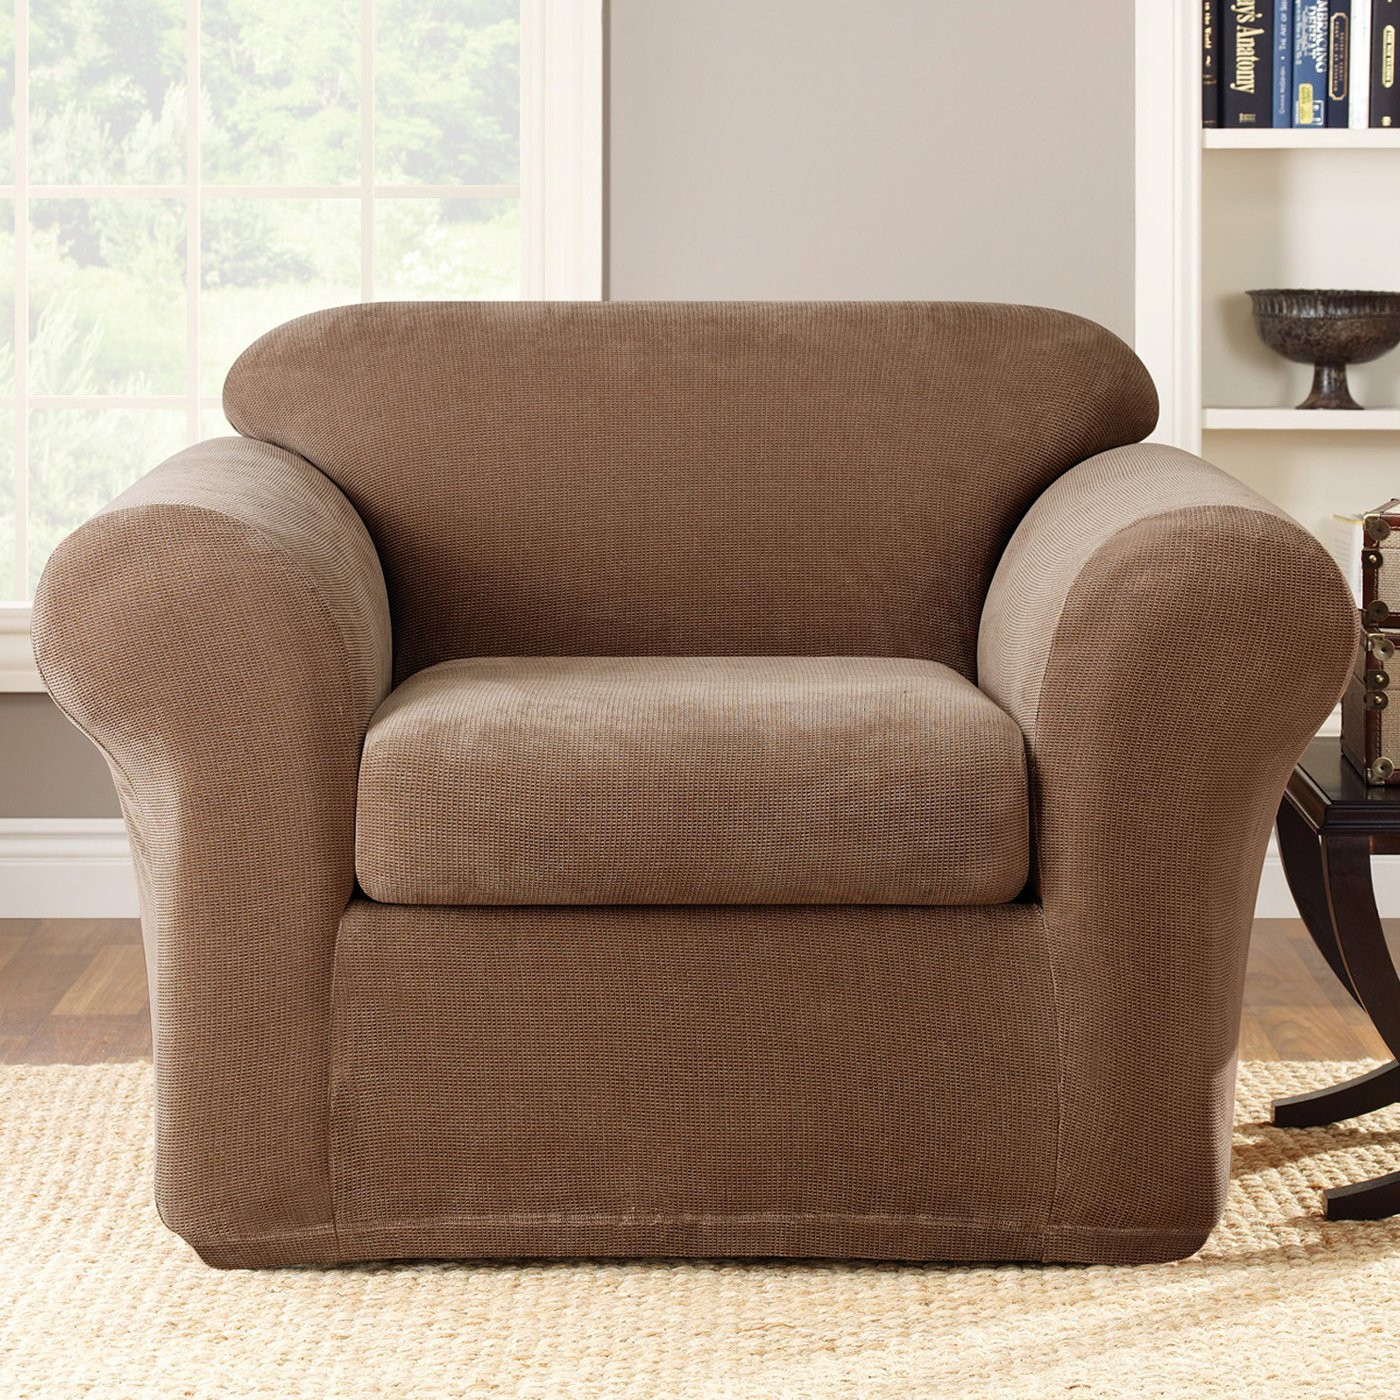 Best ideas about Sure Fit Chair Covers . Save or Pin Sure Fit Slipcovers Stretch Metro Chair Slipcover 2 PC Now.